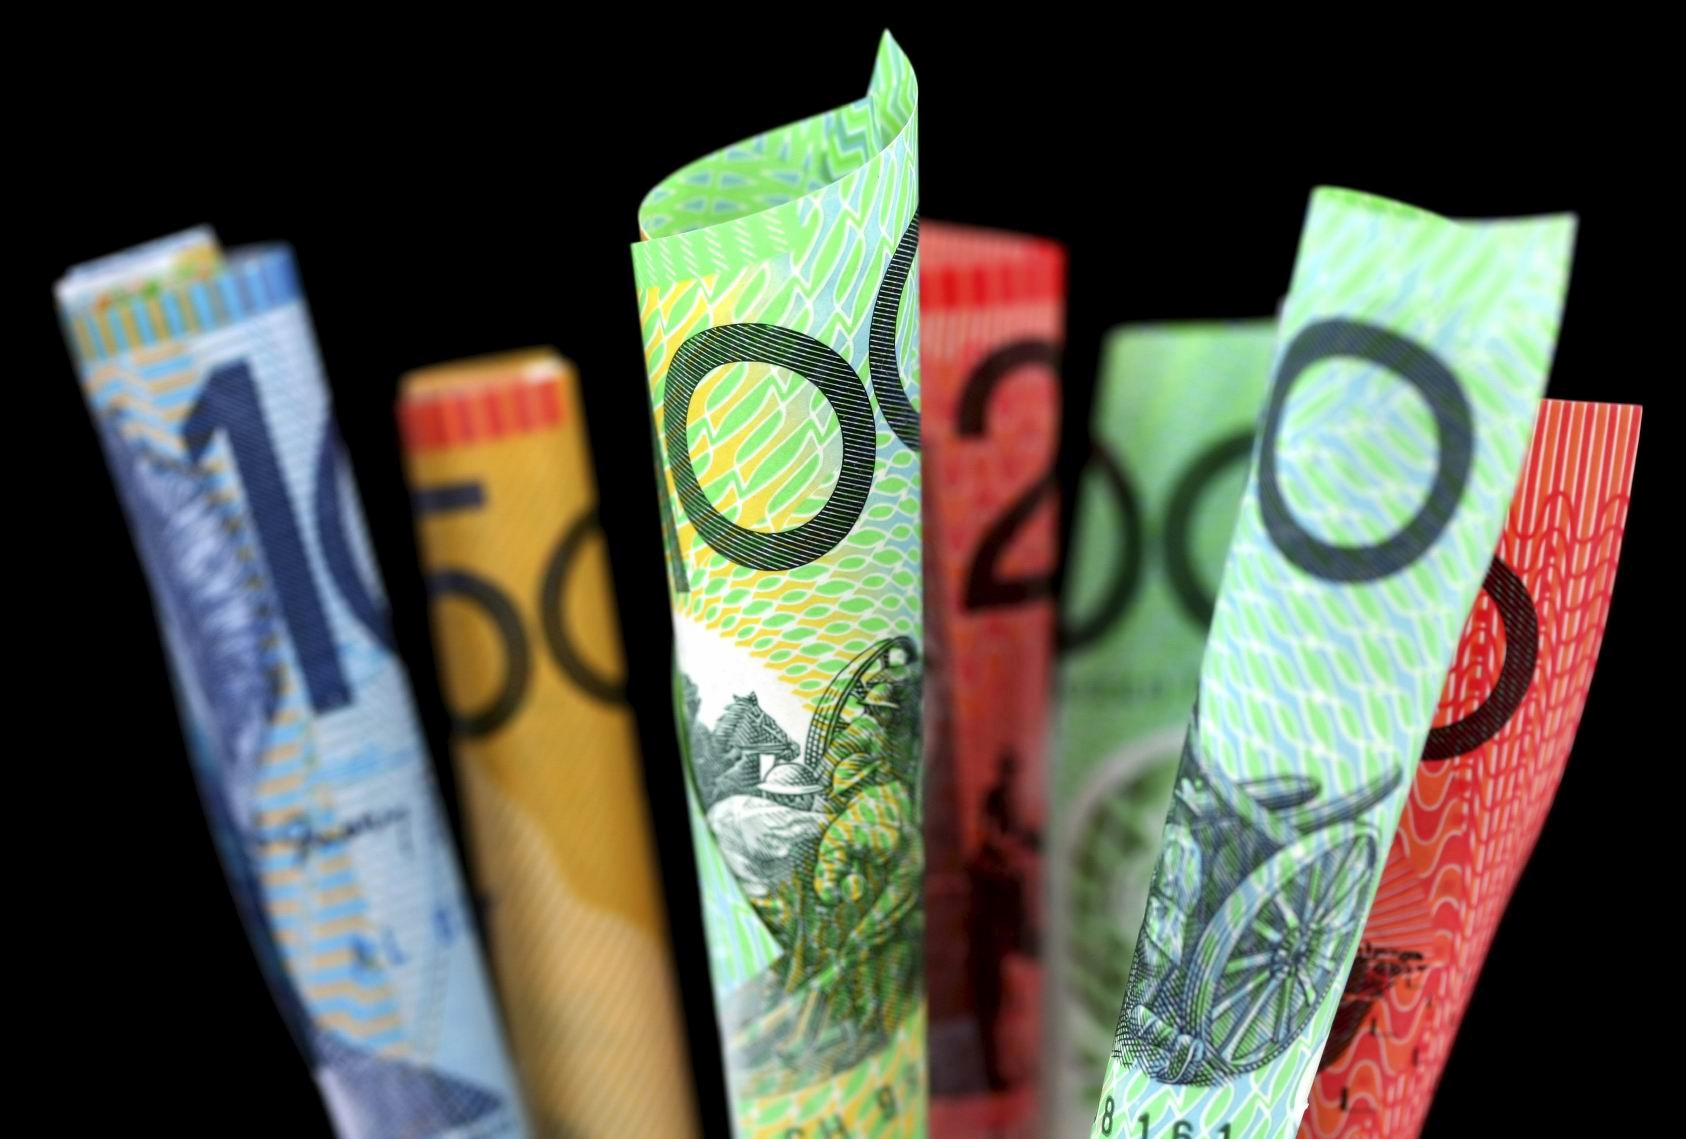 Australian money ~ furled Australian notes, with black background.  Focus on front $100 note.